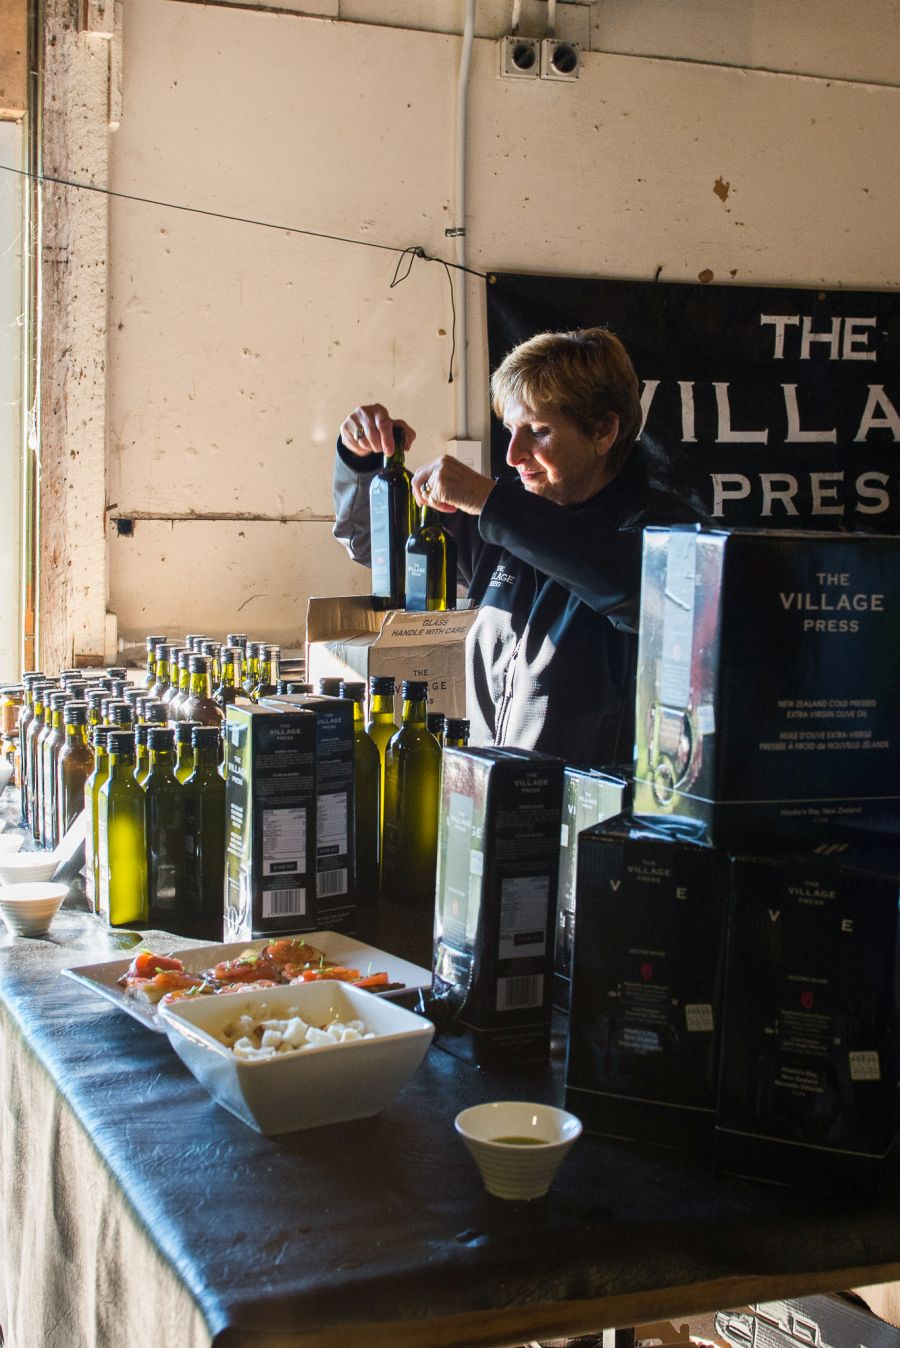 The Village Press